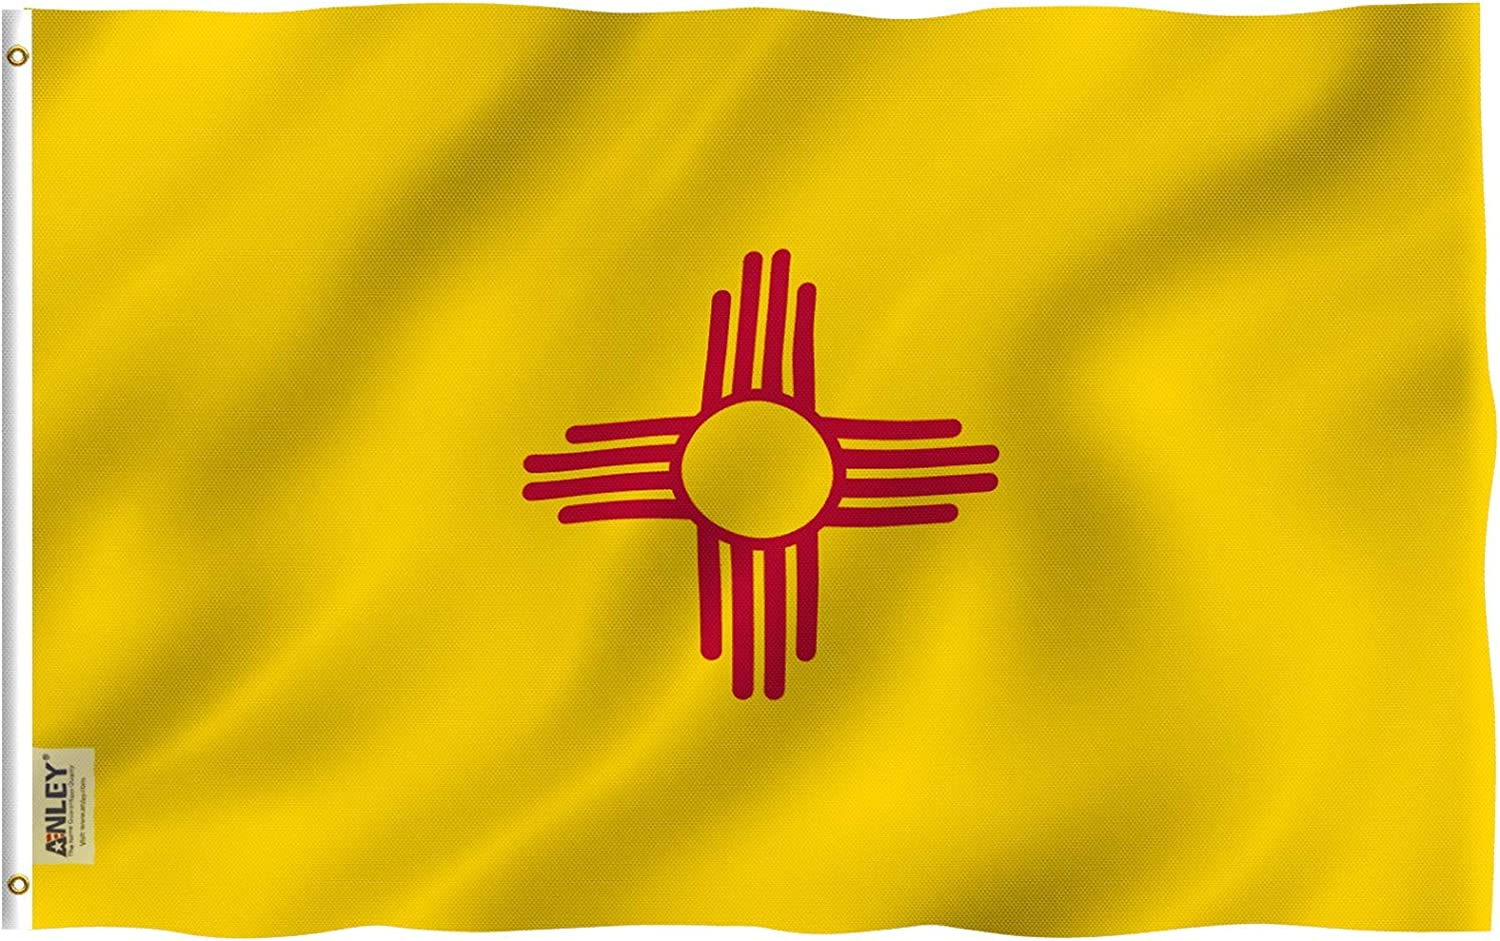 Anley Fly Breeze 3x5 Foot New Mexico State Flag - Vivid Color and Fade Proof - Canvas Header and Double Stitched - New Mexico NM Flags Polyester with Brass Grommets 3 X 5 Ft